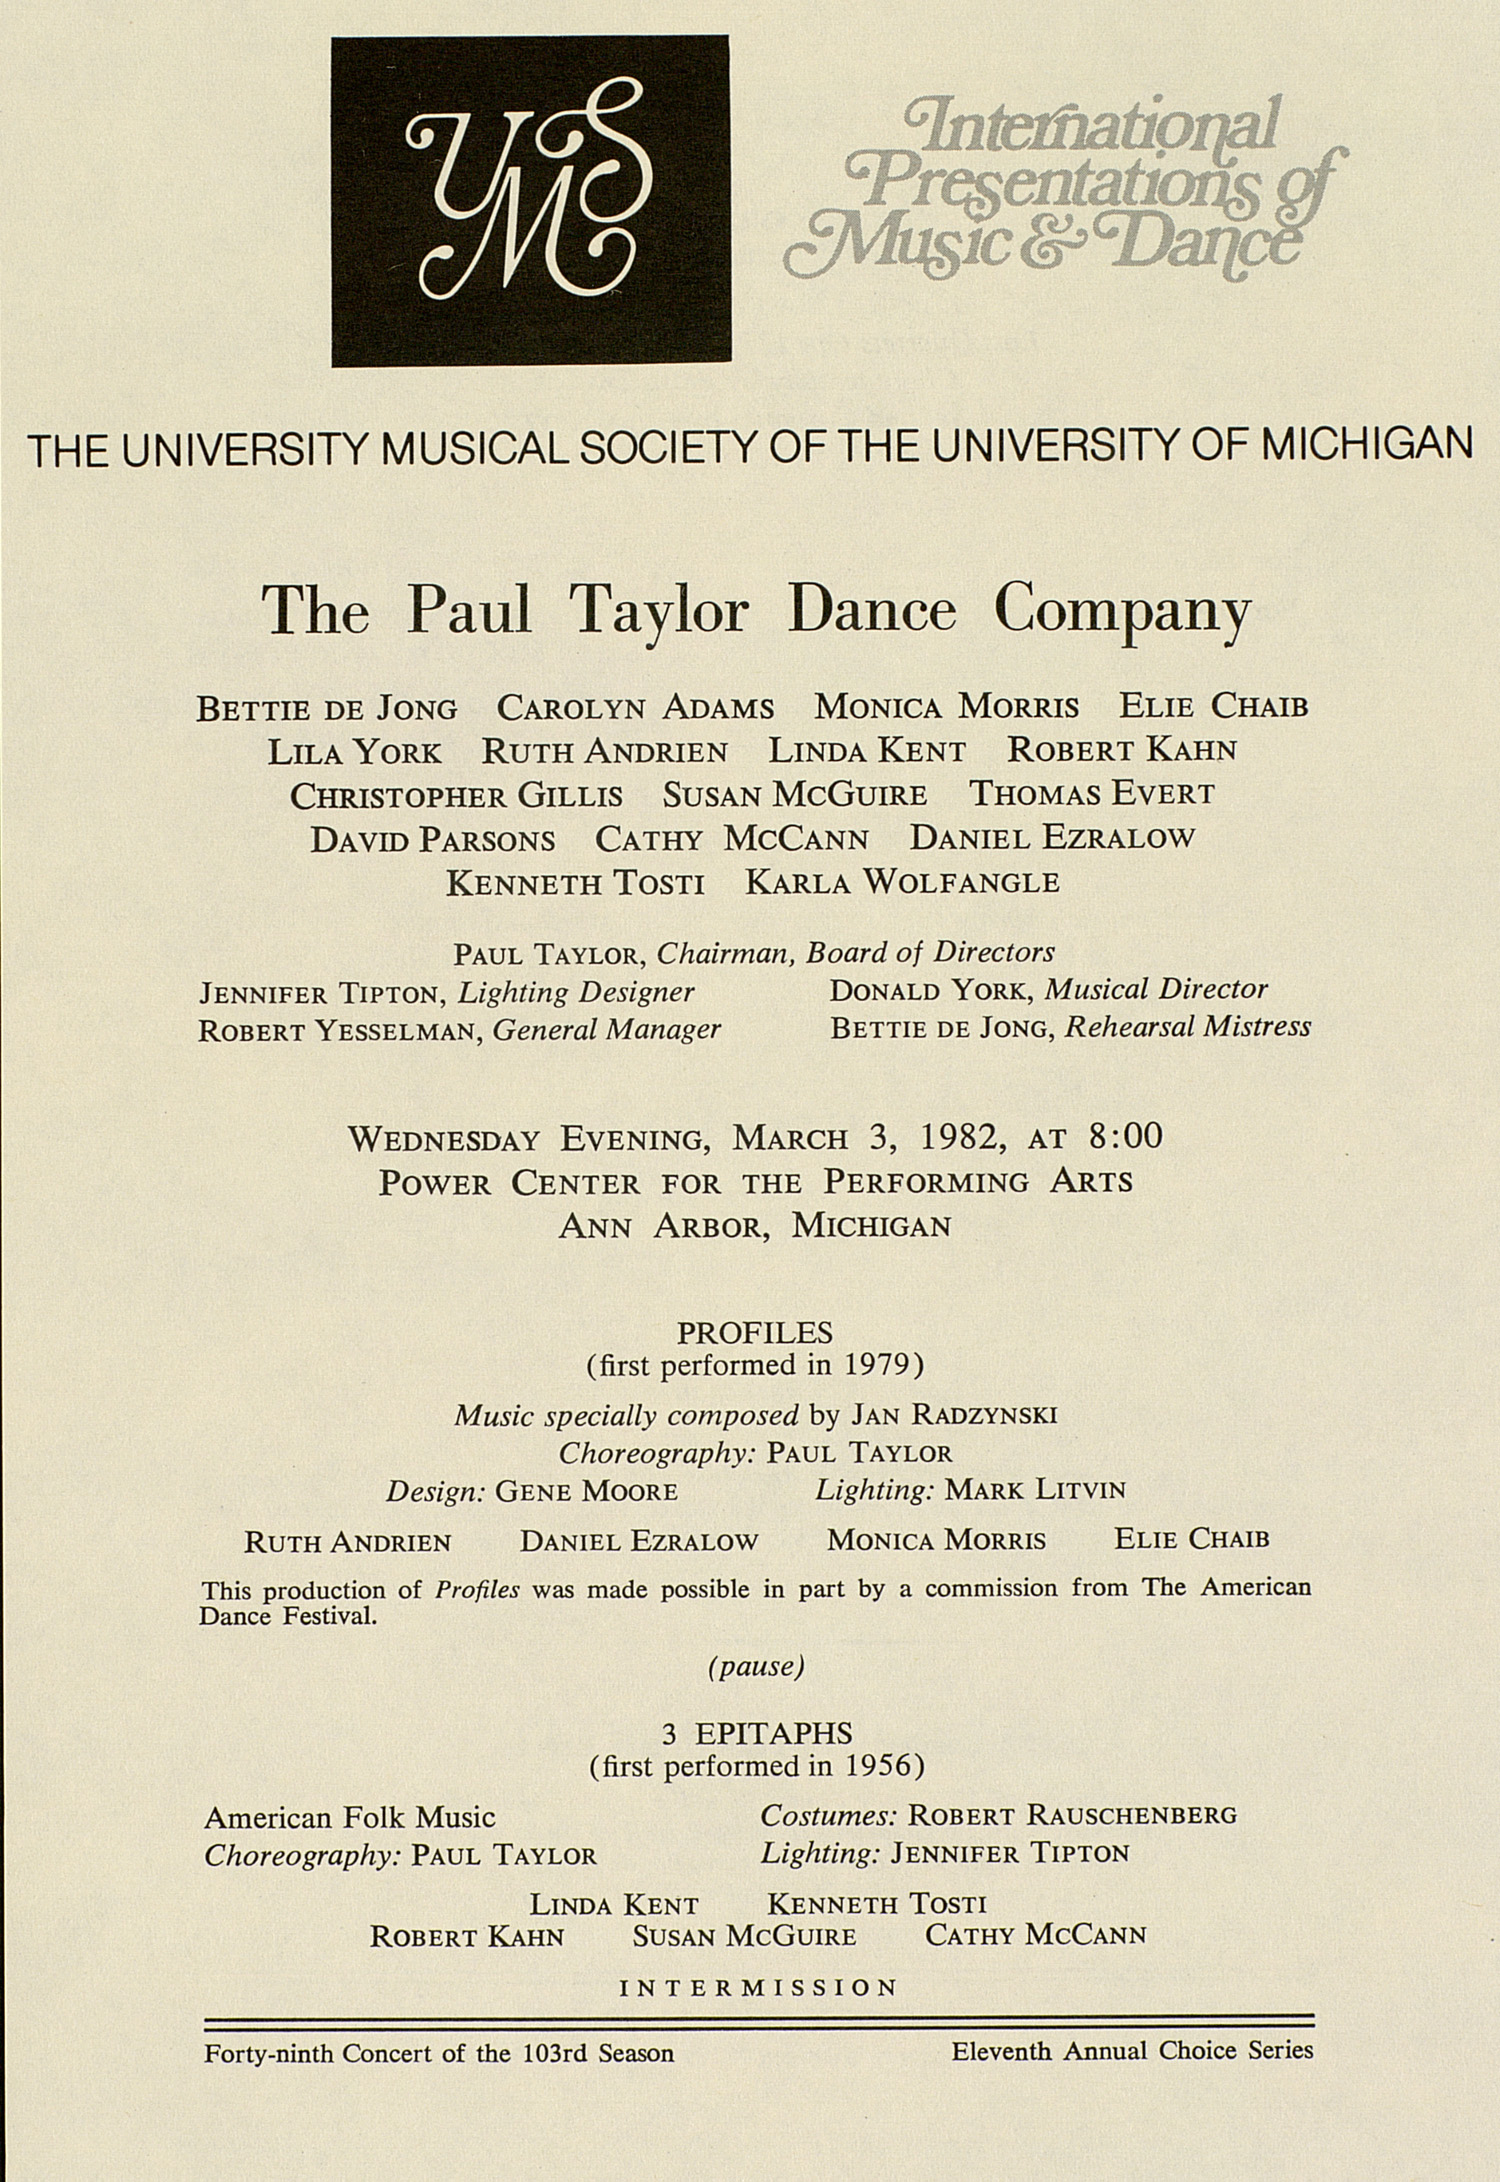 UMS Concert Program, March 3, 1982: International Presentations Of Music & Dance -- The Paul Taylor Dance Company image